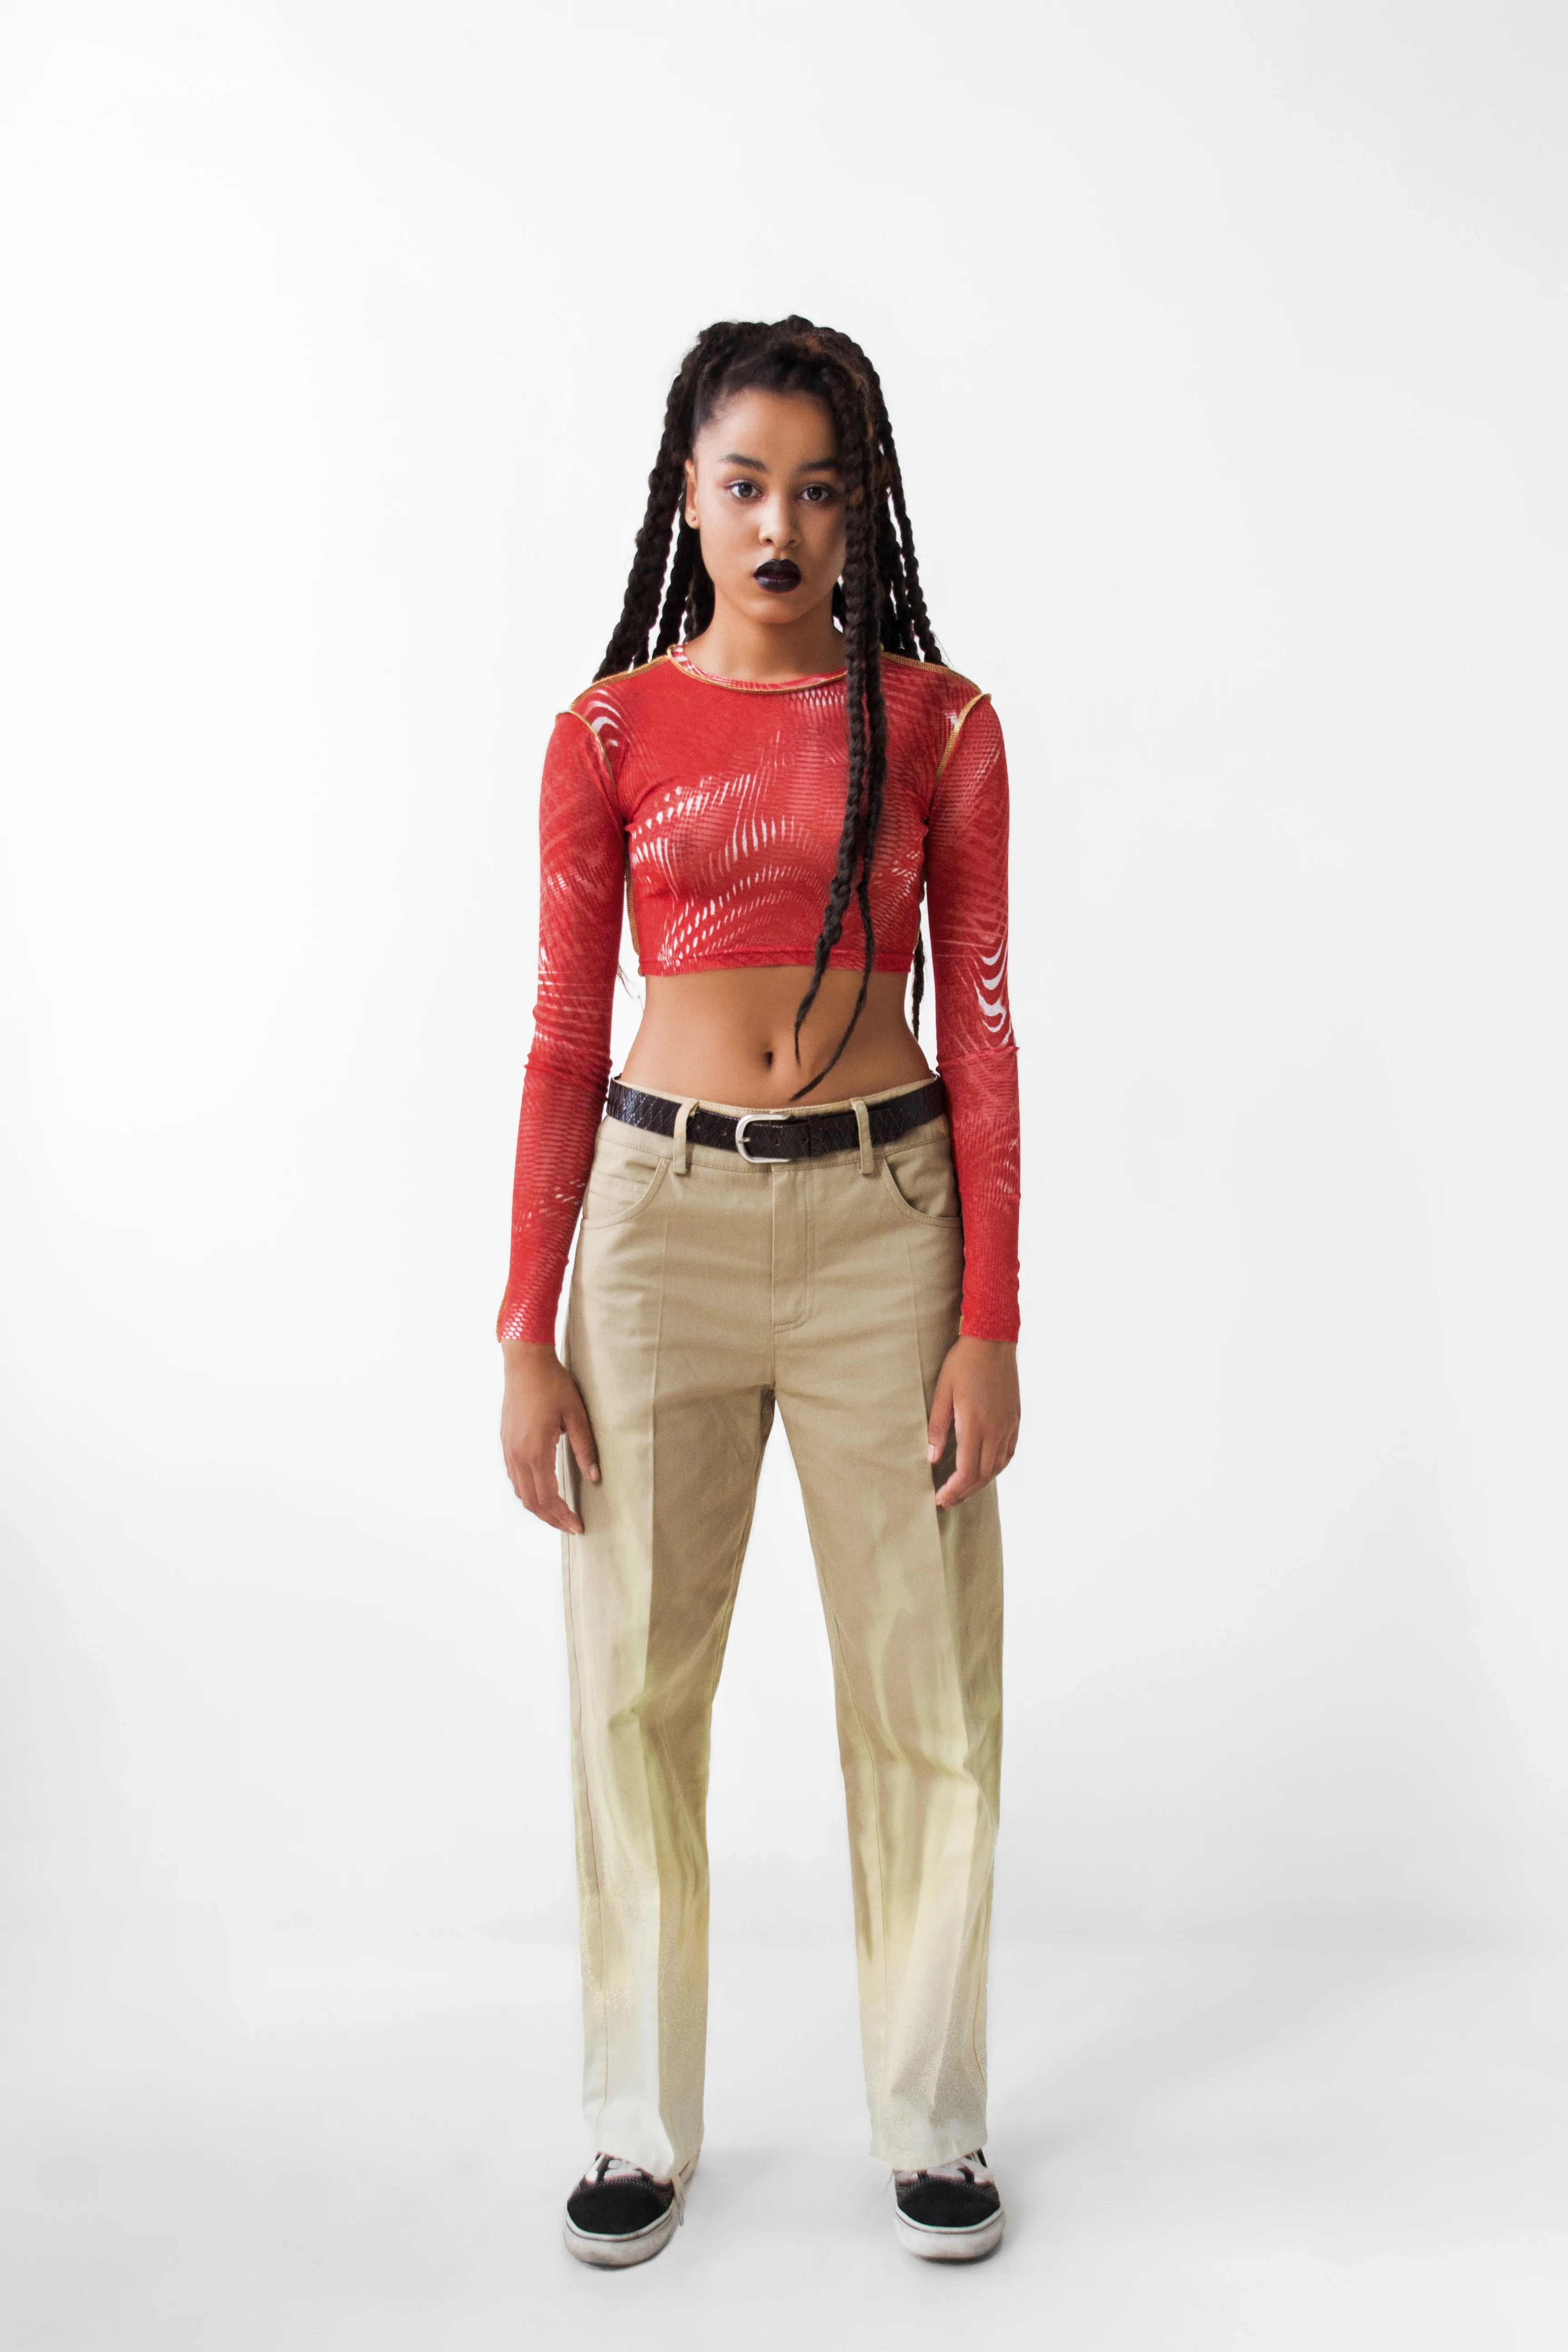 hight resolution of red cropped longsleeve